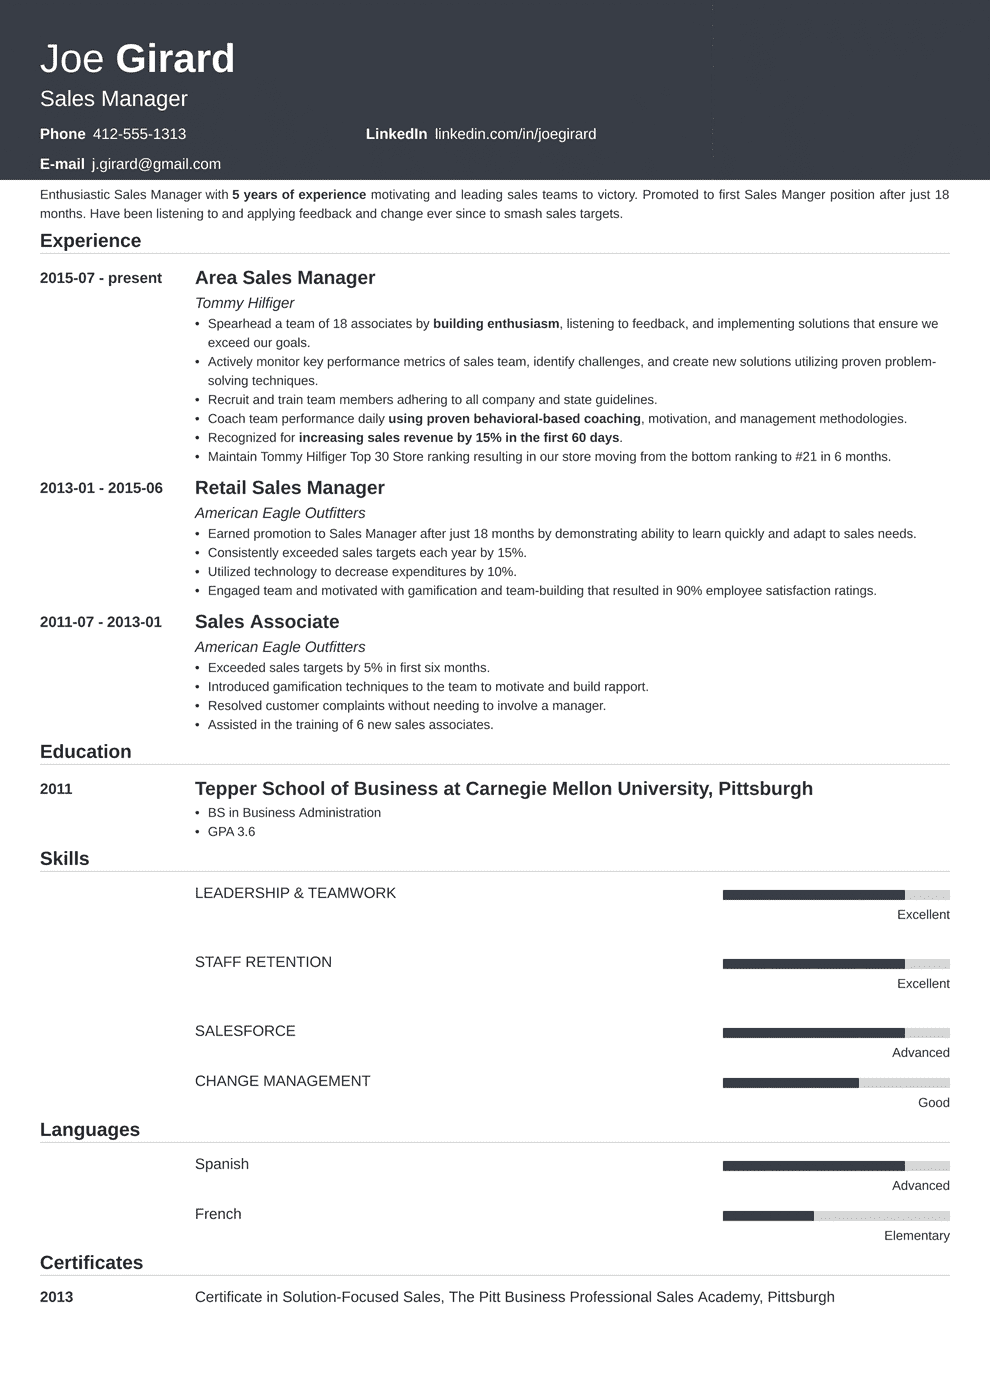 Sales Manager Resume: Example & Complete Guide [20+ Examples]